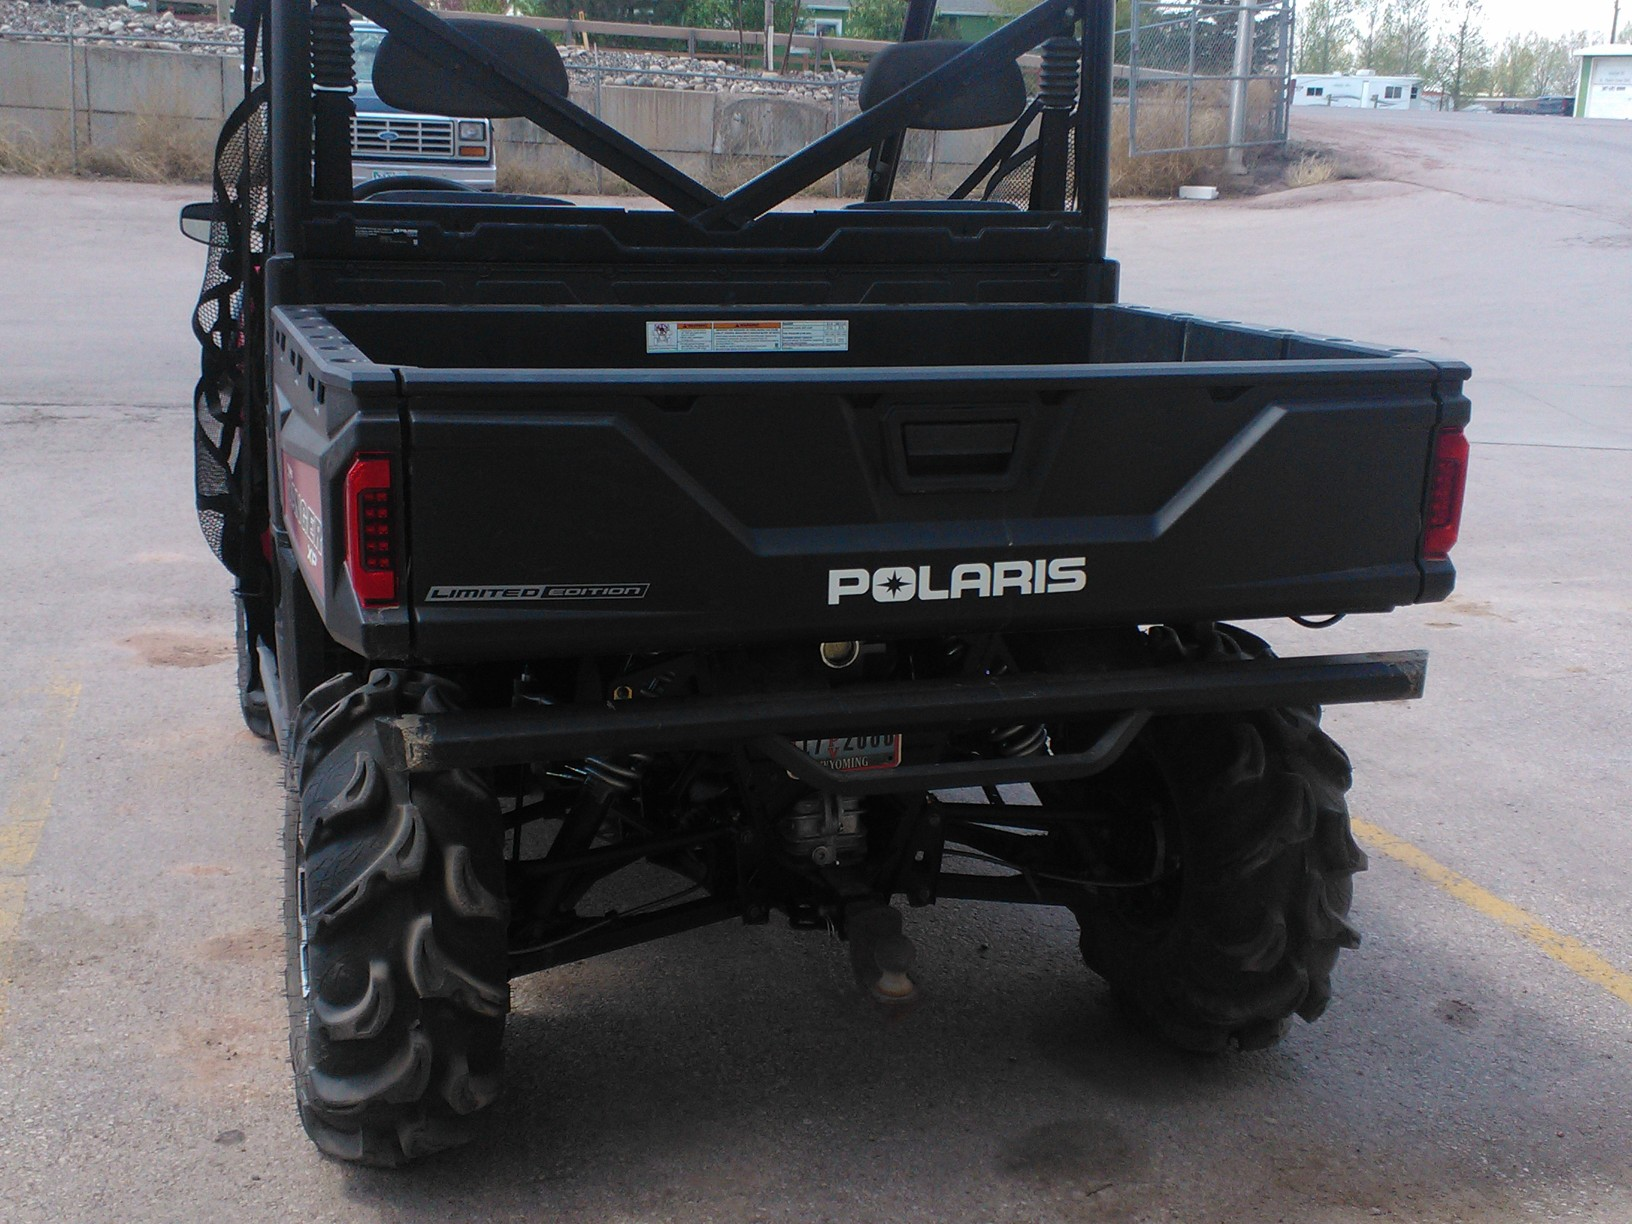 Towing With Polaris Rear Bumper Installed